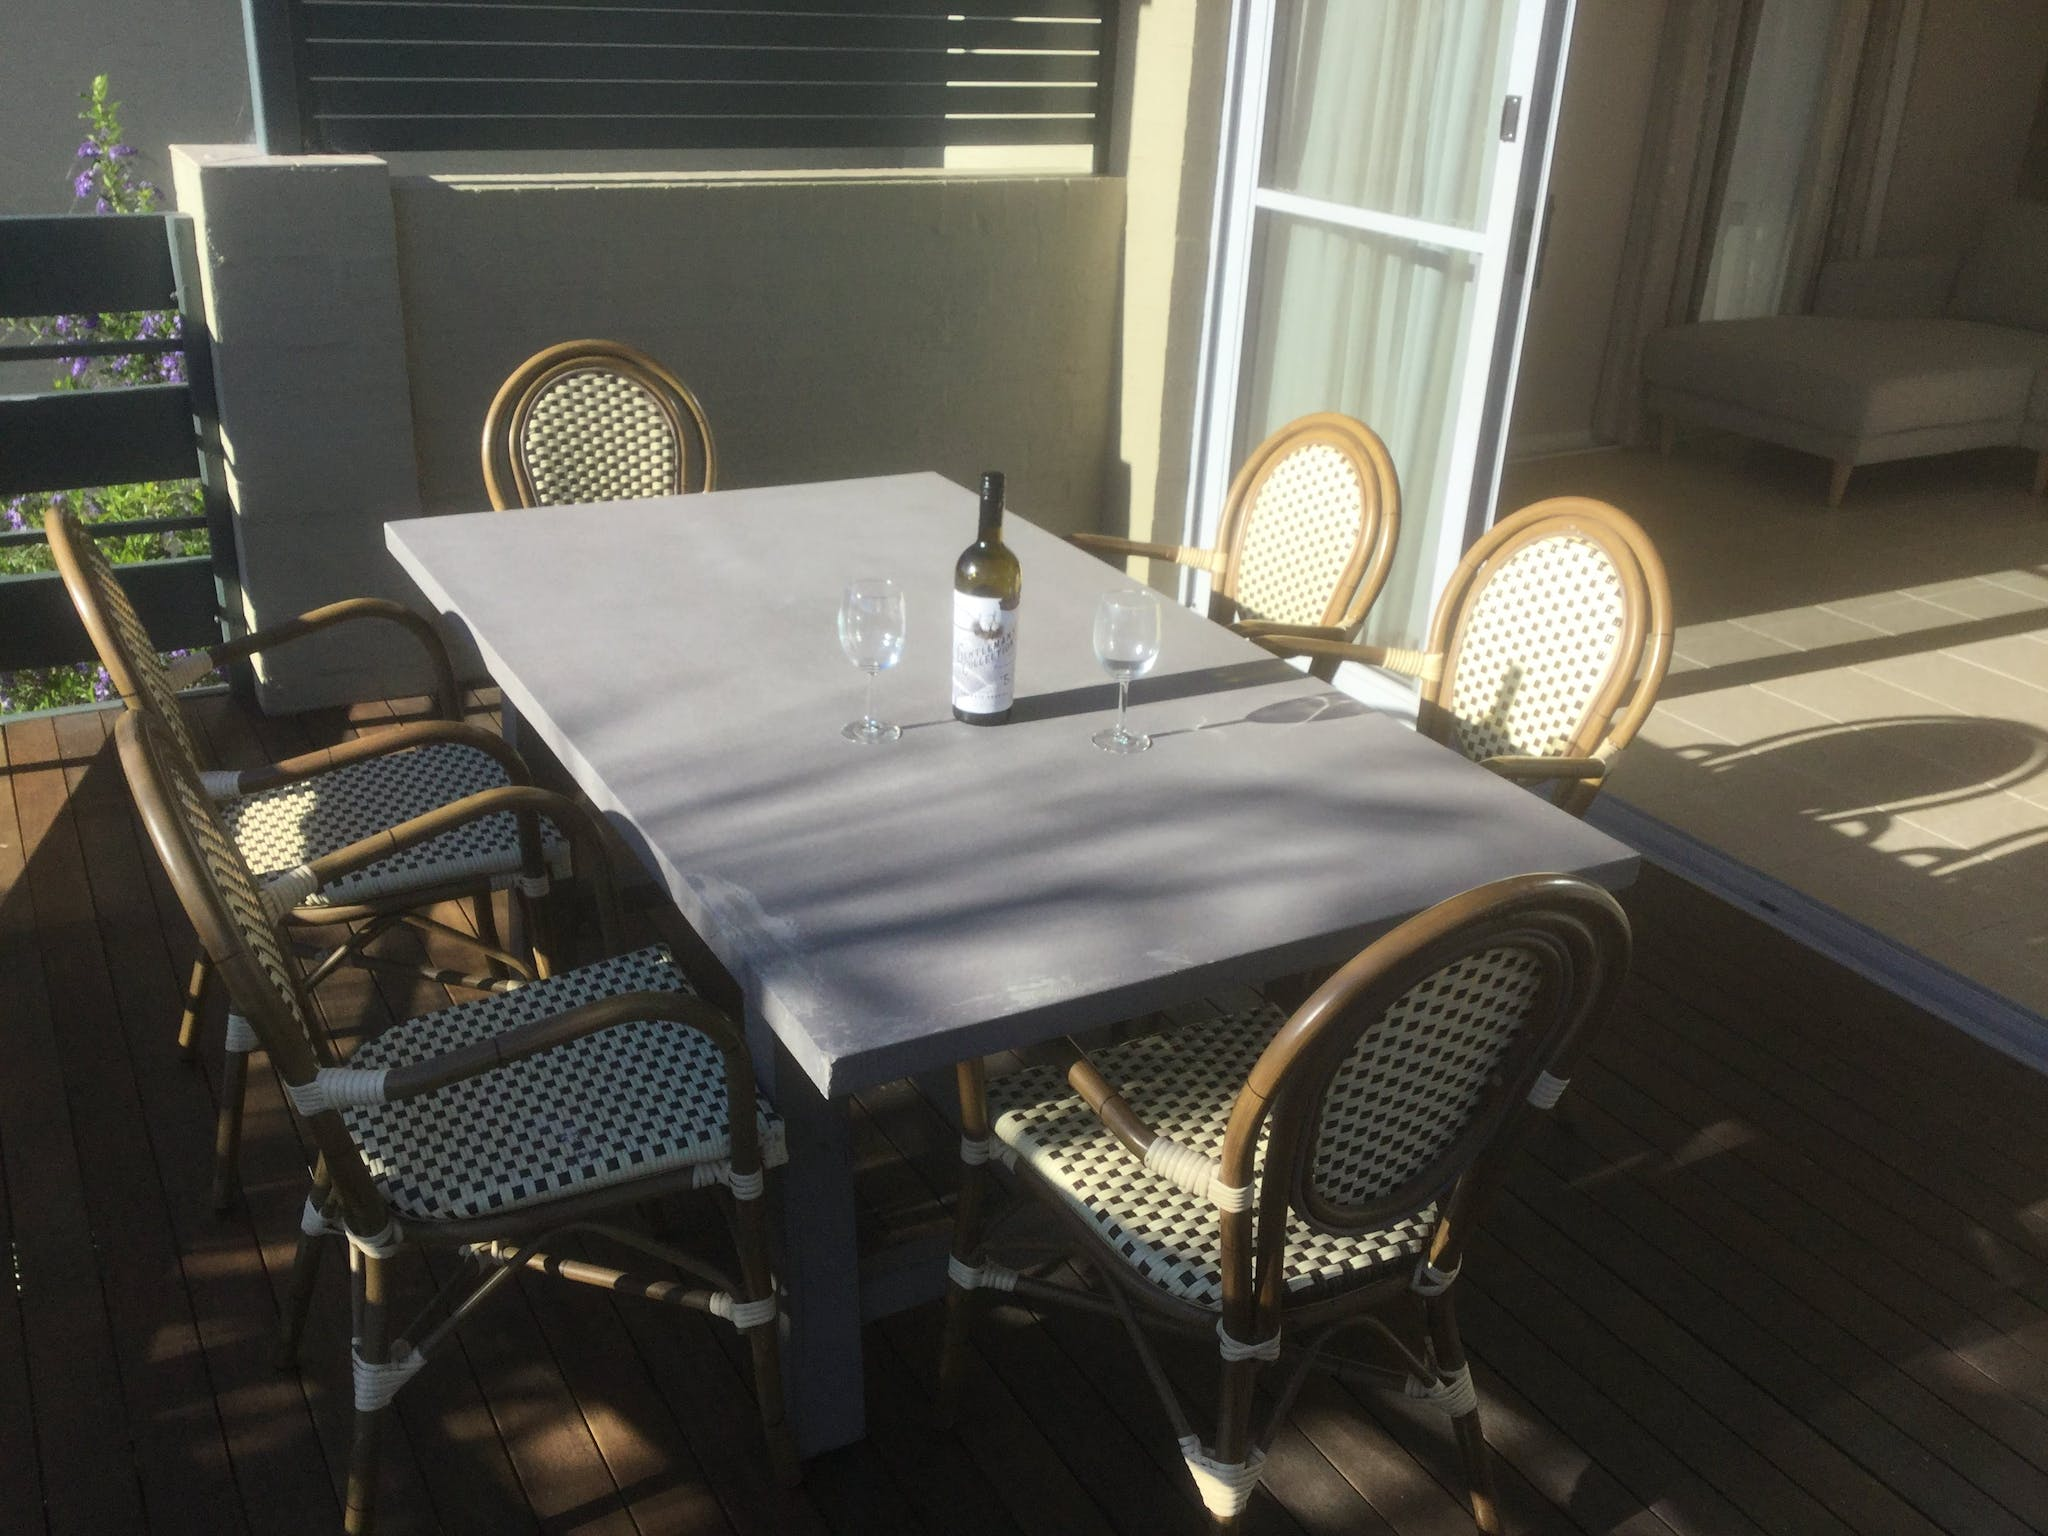 Veranda tables chairs BBQ